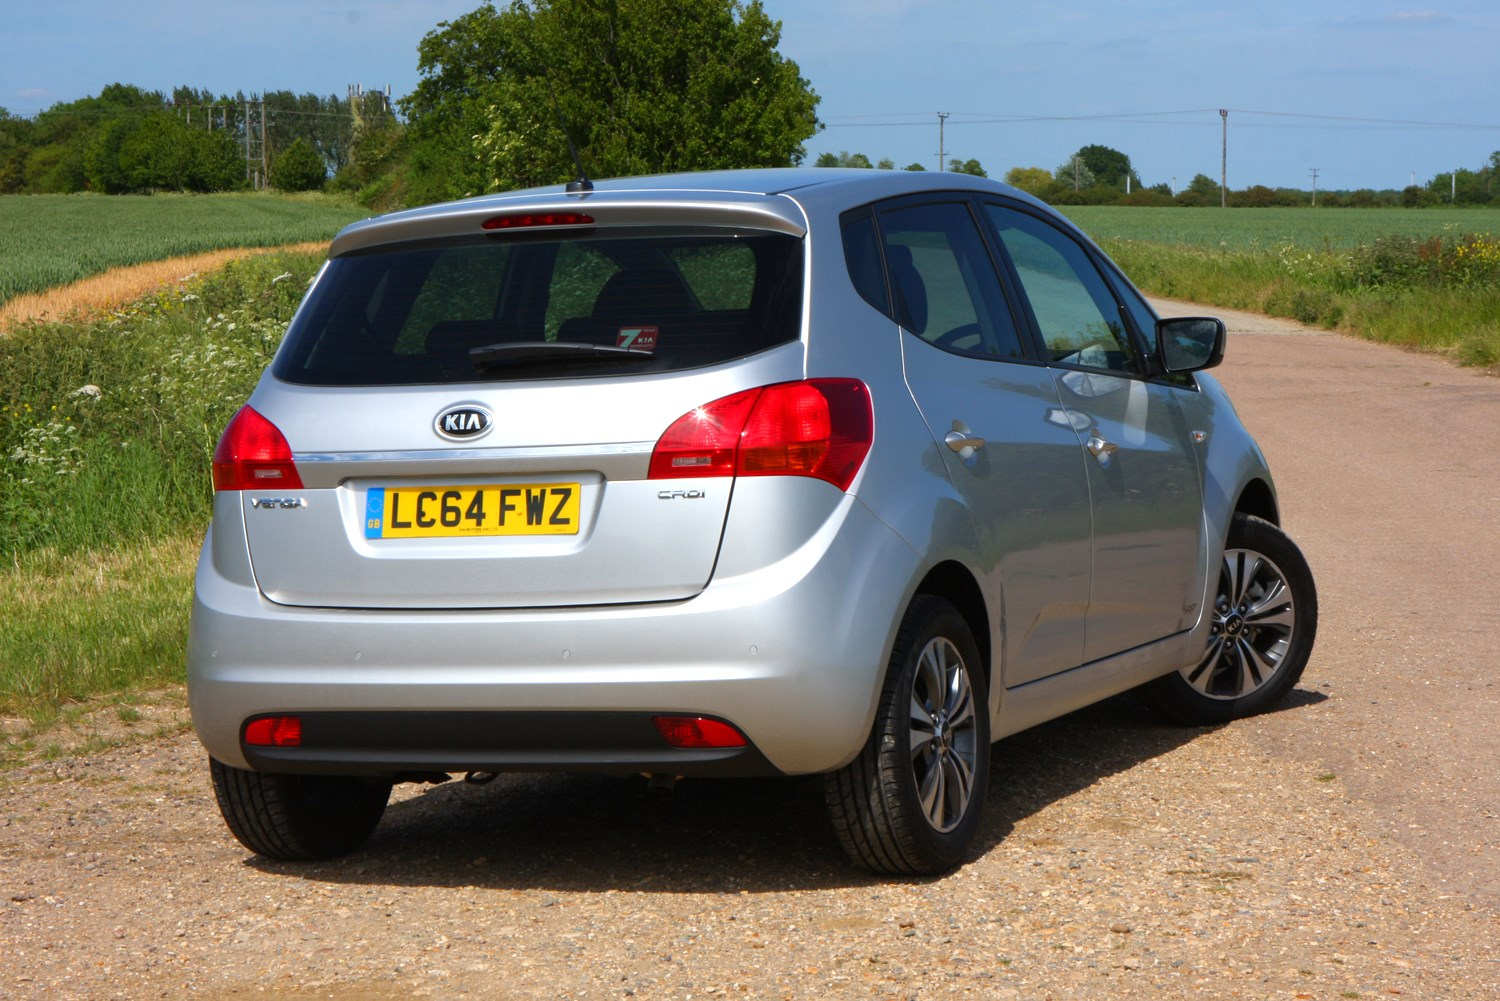 Kia Venga Estate Review (2010 - ) | Parkers